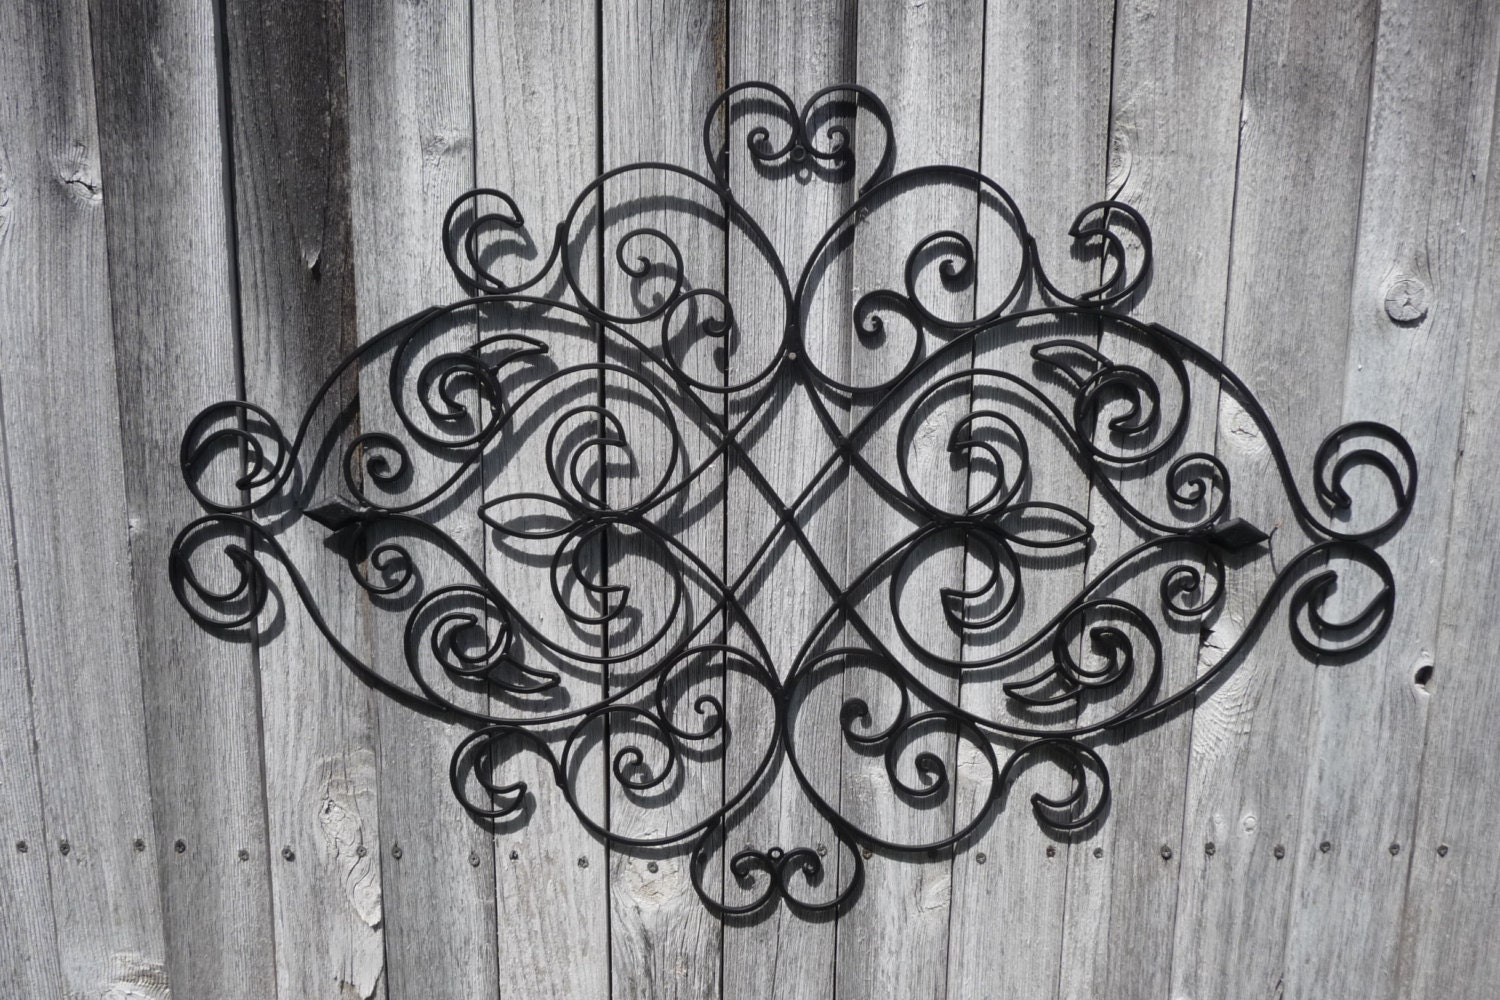 Wrought Iron Wall Decor Bedroom Headboard Black Fleur De